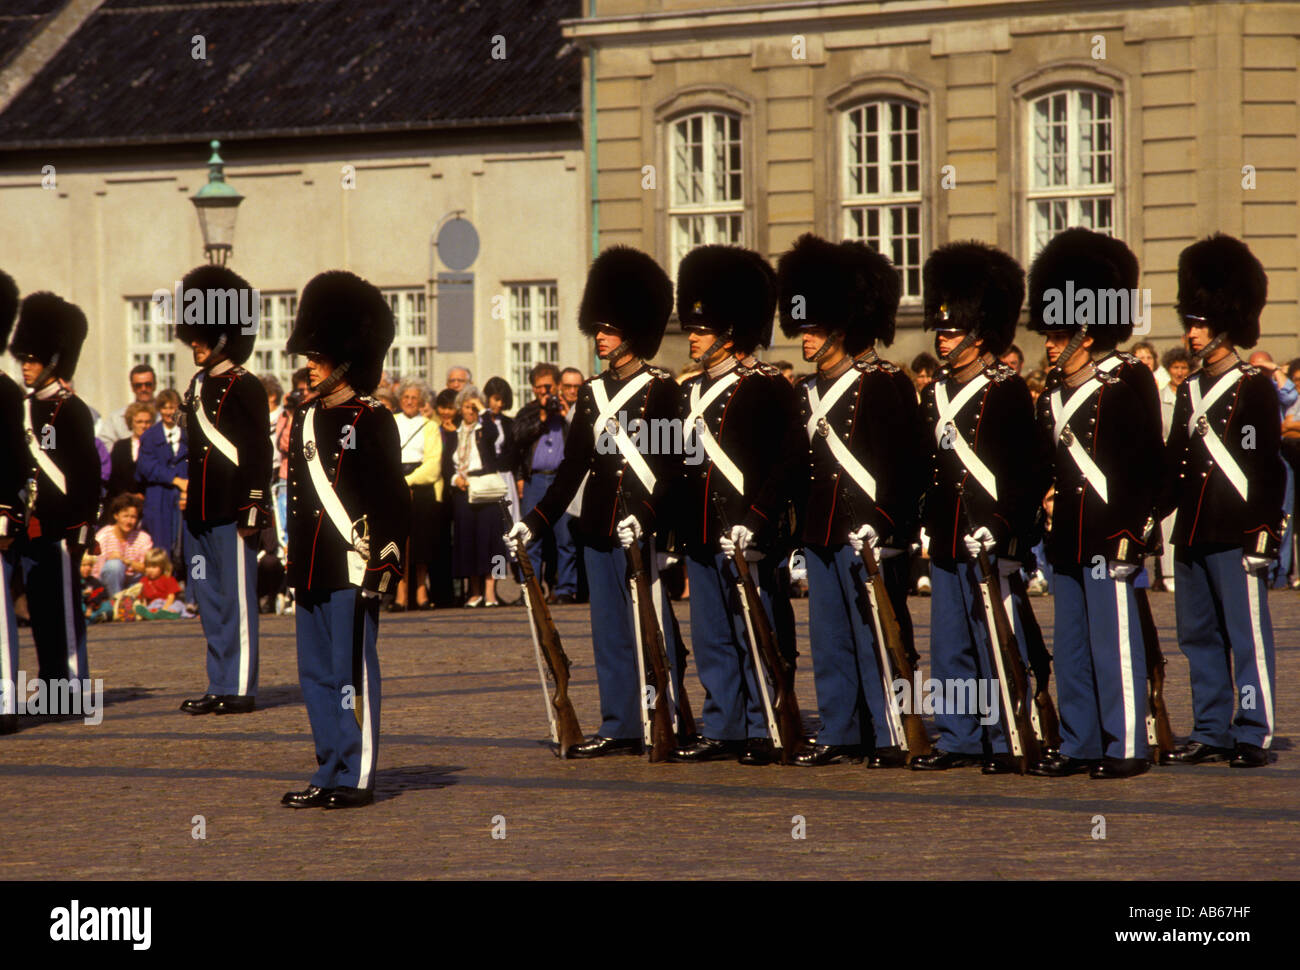 Danish Royal Guard guards at Amalienborg Palace Amalienborg Palace Square Copenhagen Denmark Europe - Stock Image